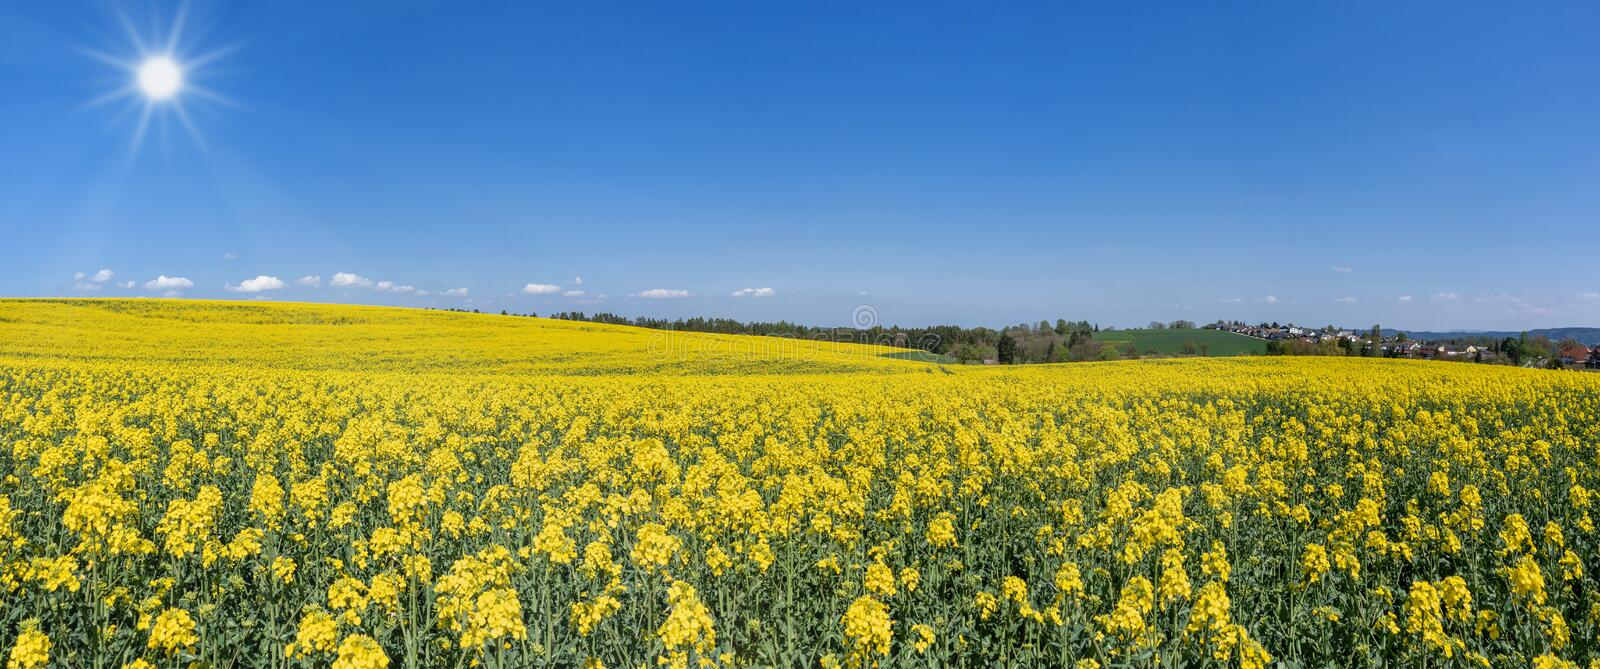 Blooming rapeseed field in hilly landscape - panorama royalty free stock image